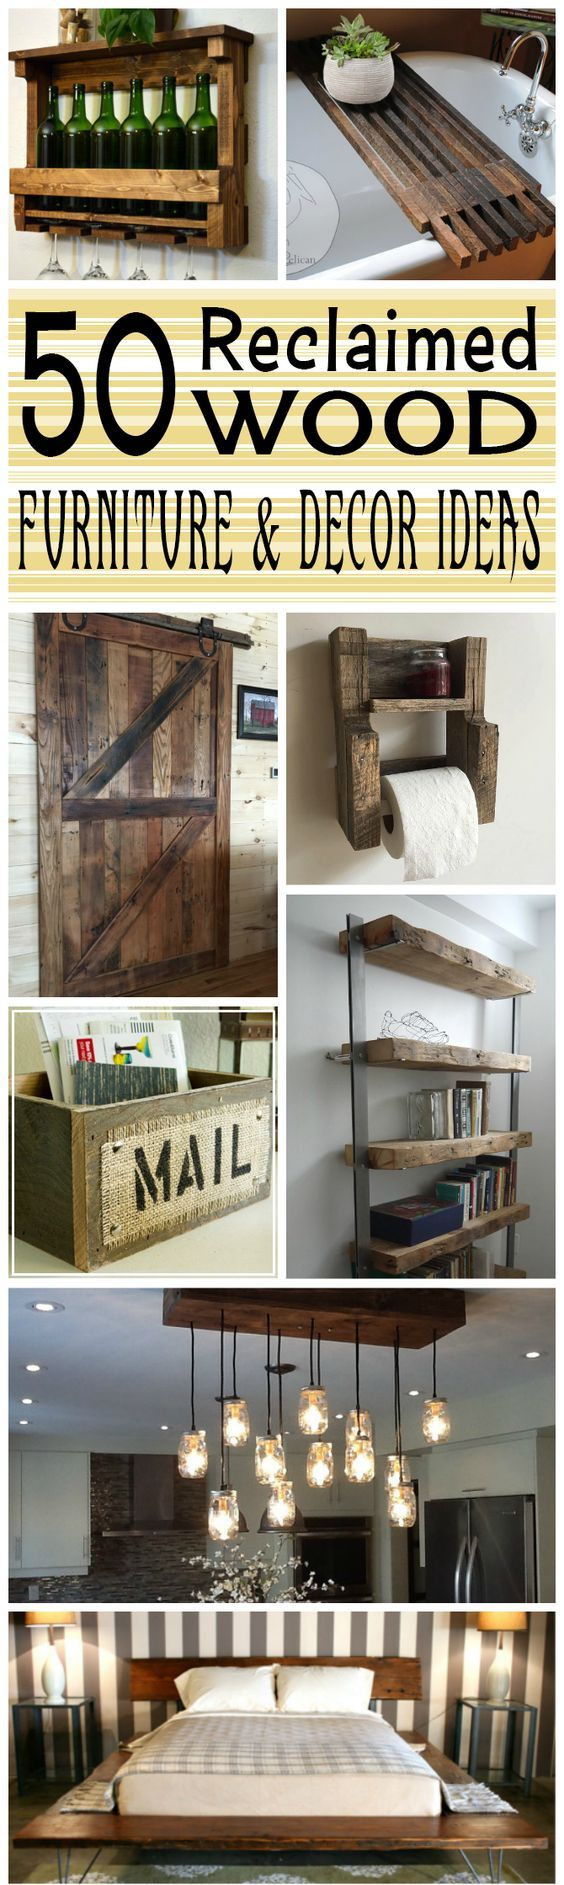 These Reclaimed Wood Furniture And Decor ideas are simply beautiful. I really need to get my DIY swag on for these projects!